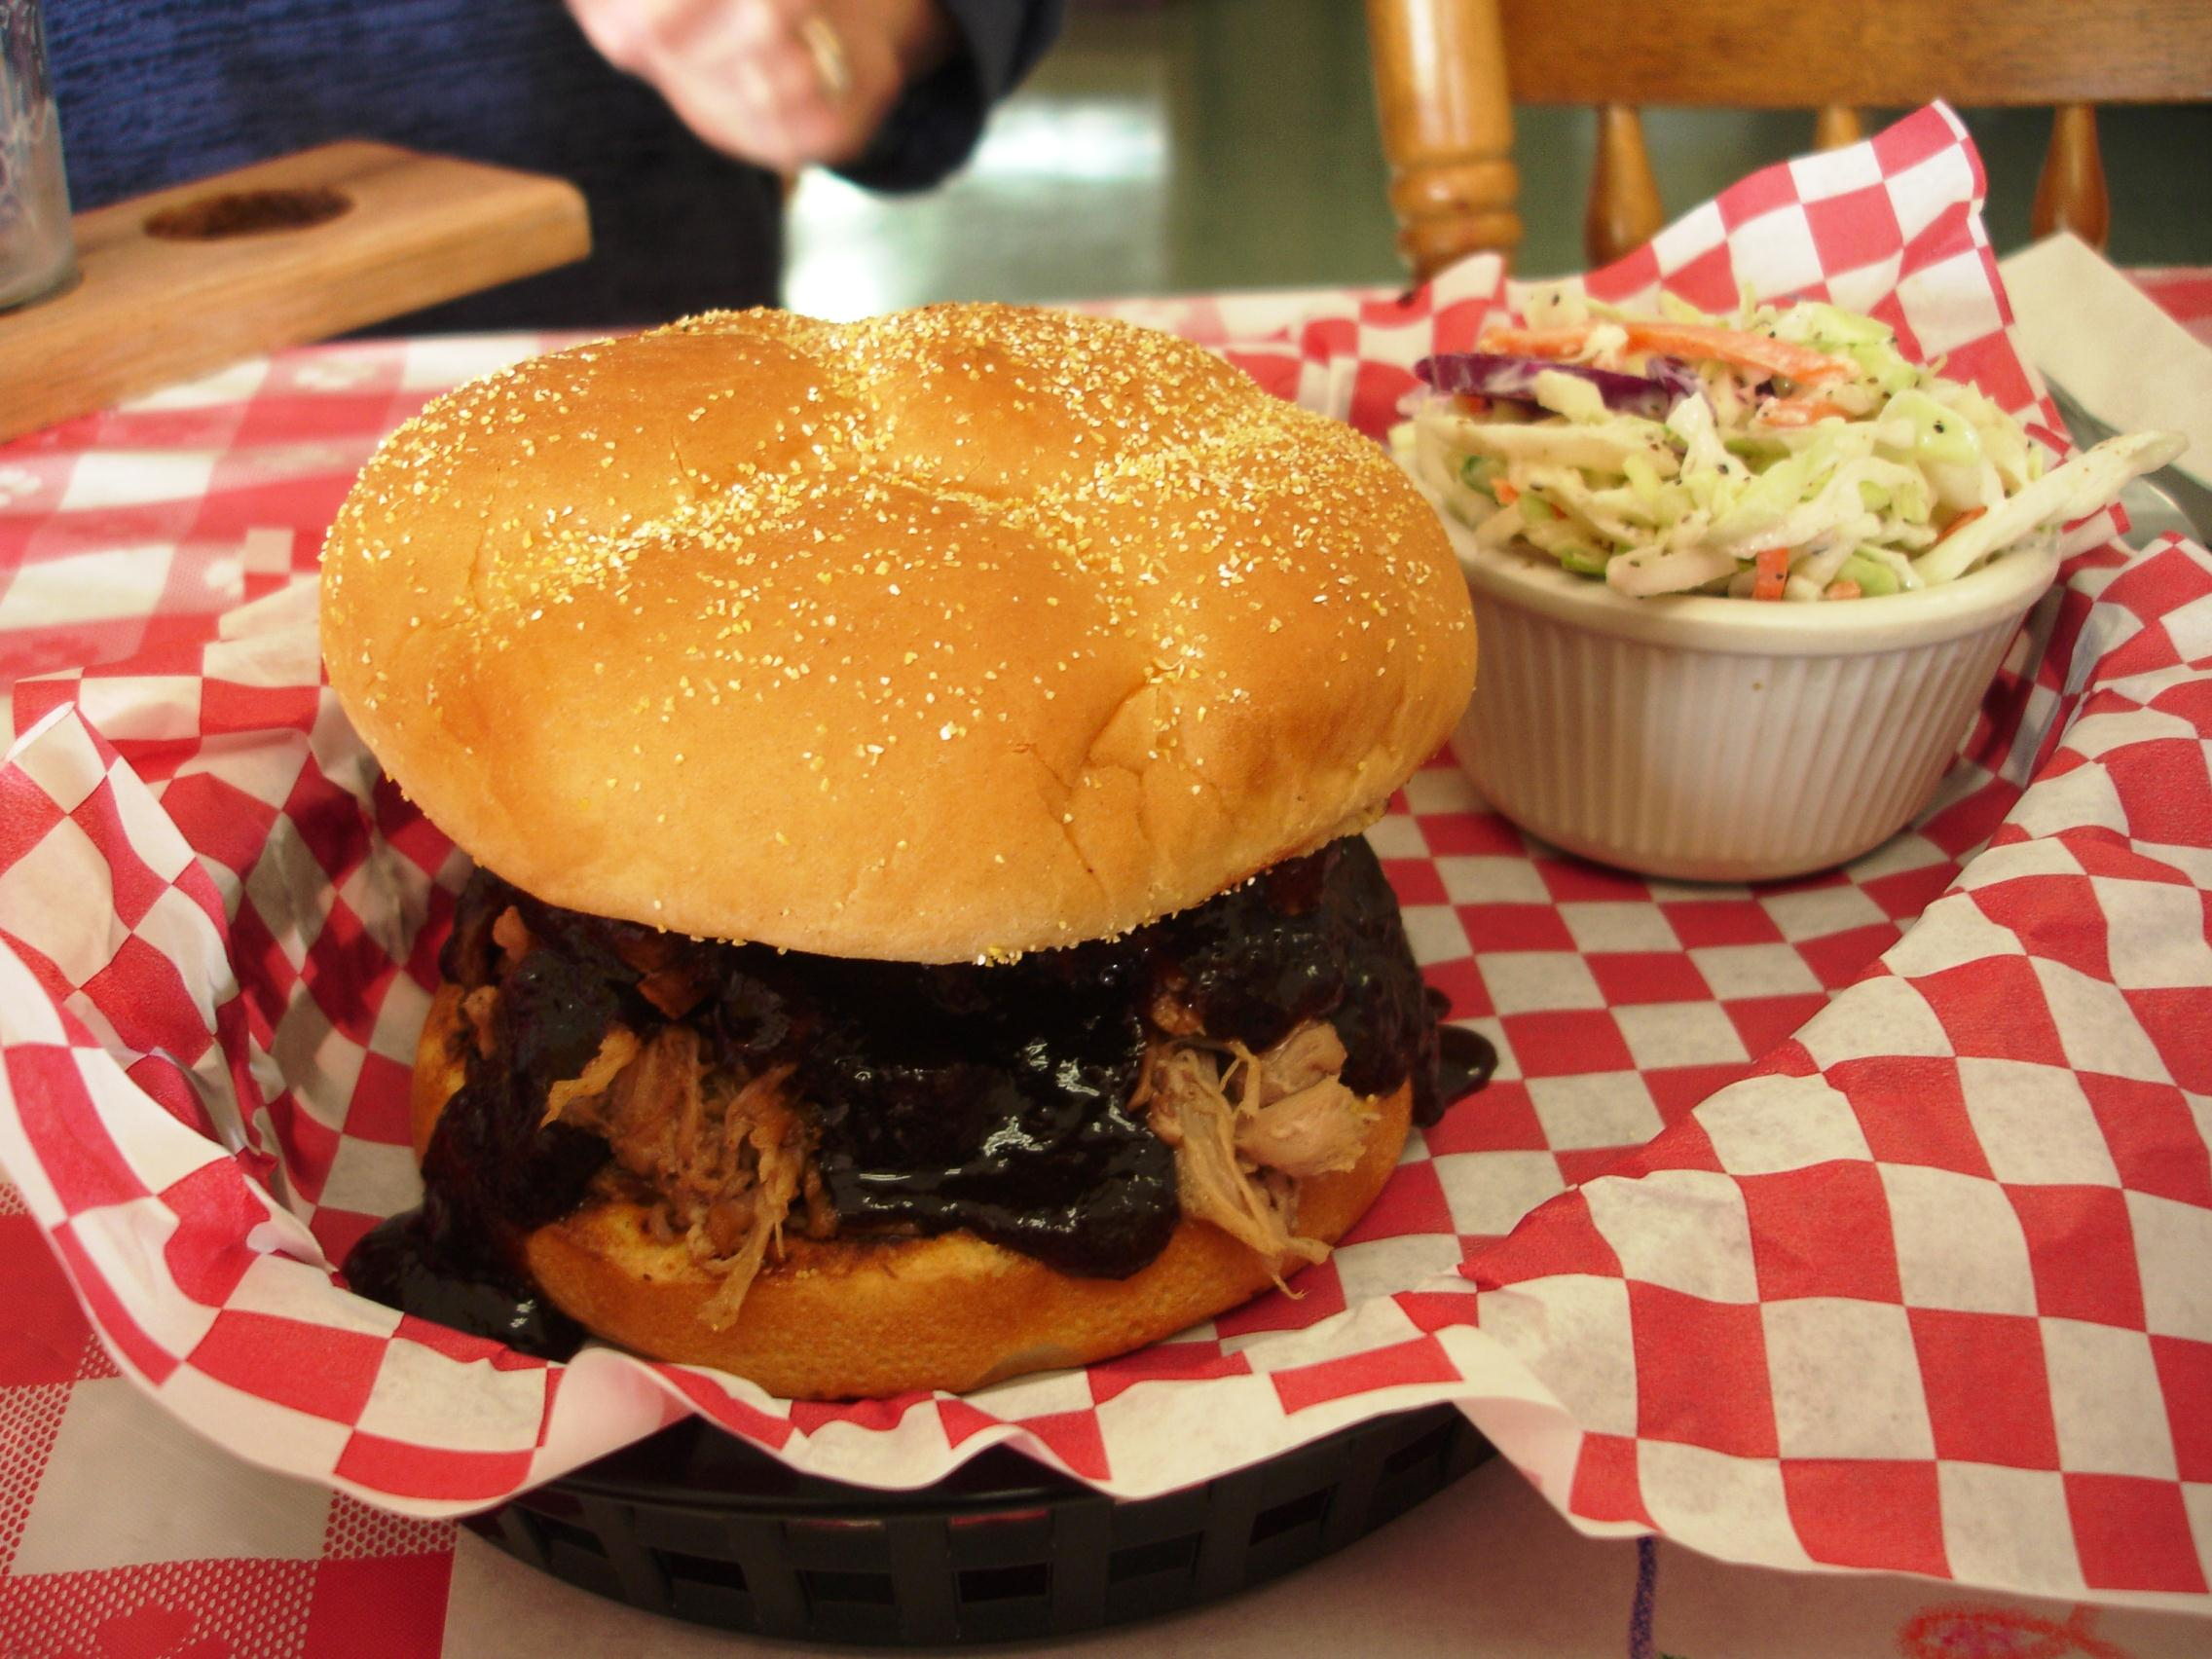 We asked for our pulled pork sandwich with their thick and rich Smokey Sweet sauce. The pulled pork is as good as the ribs.